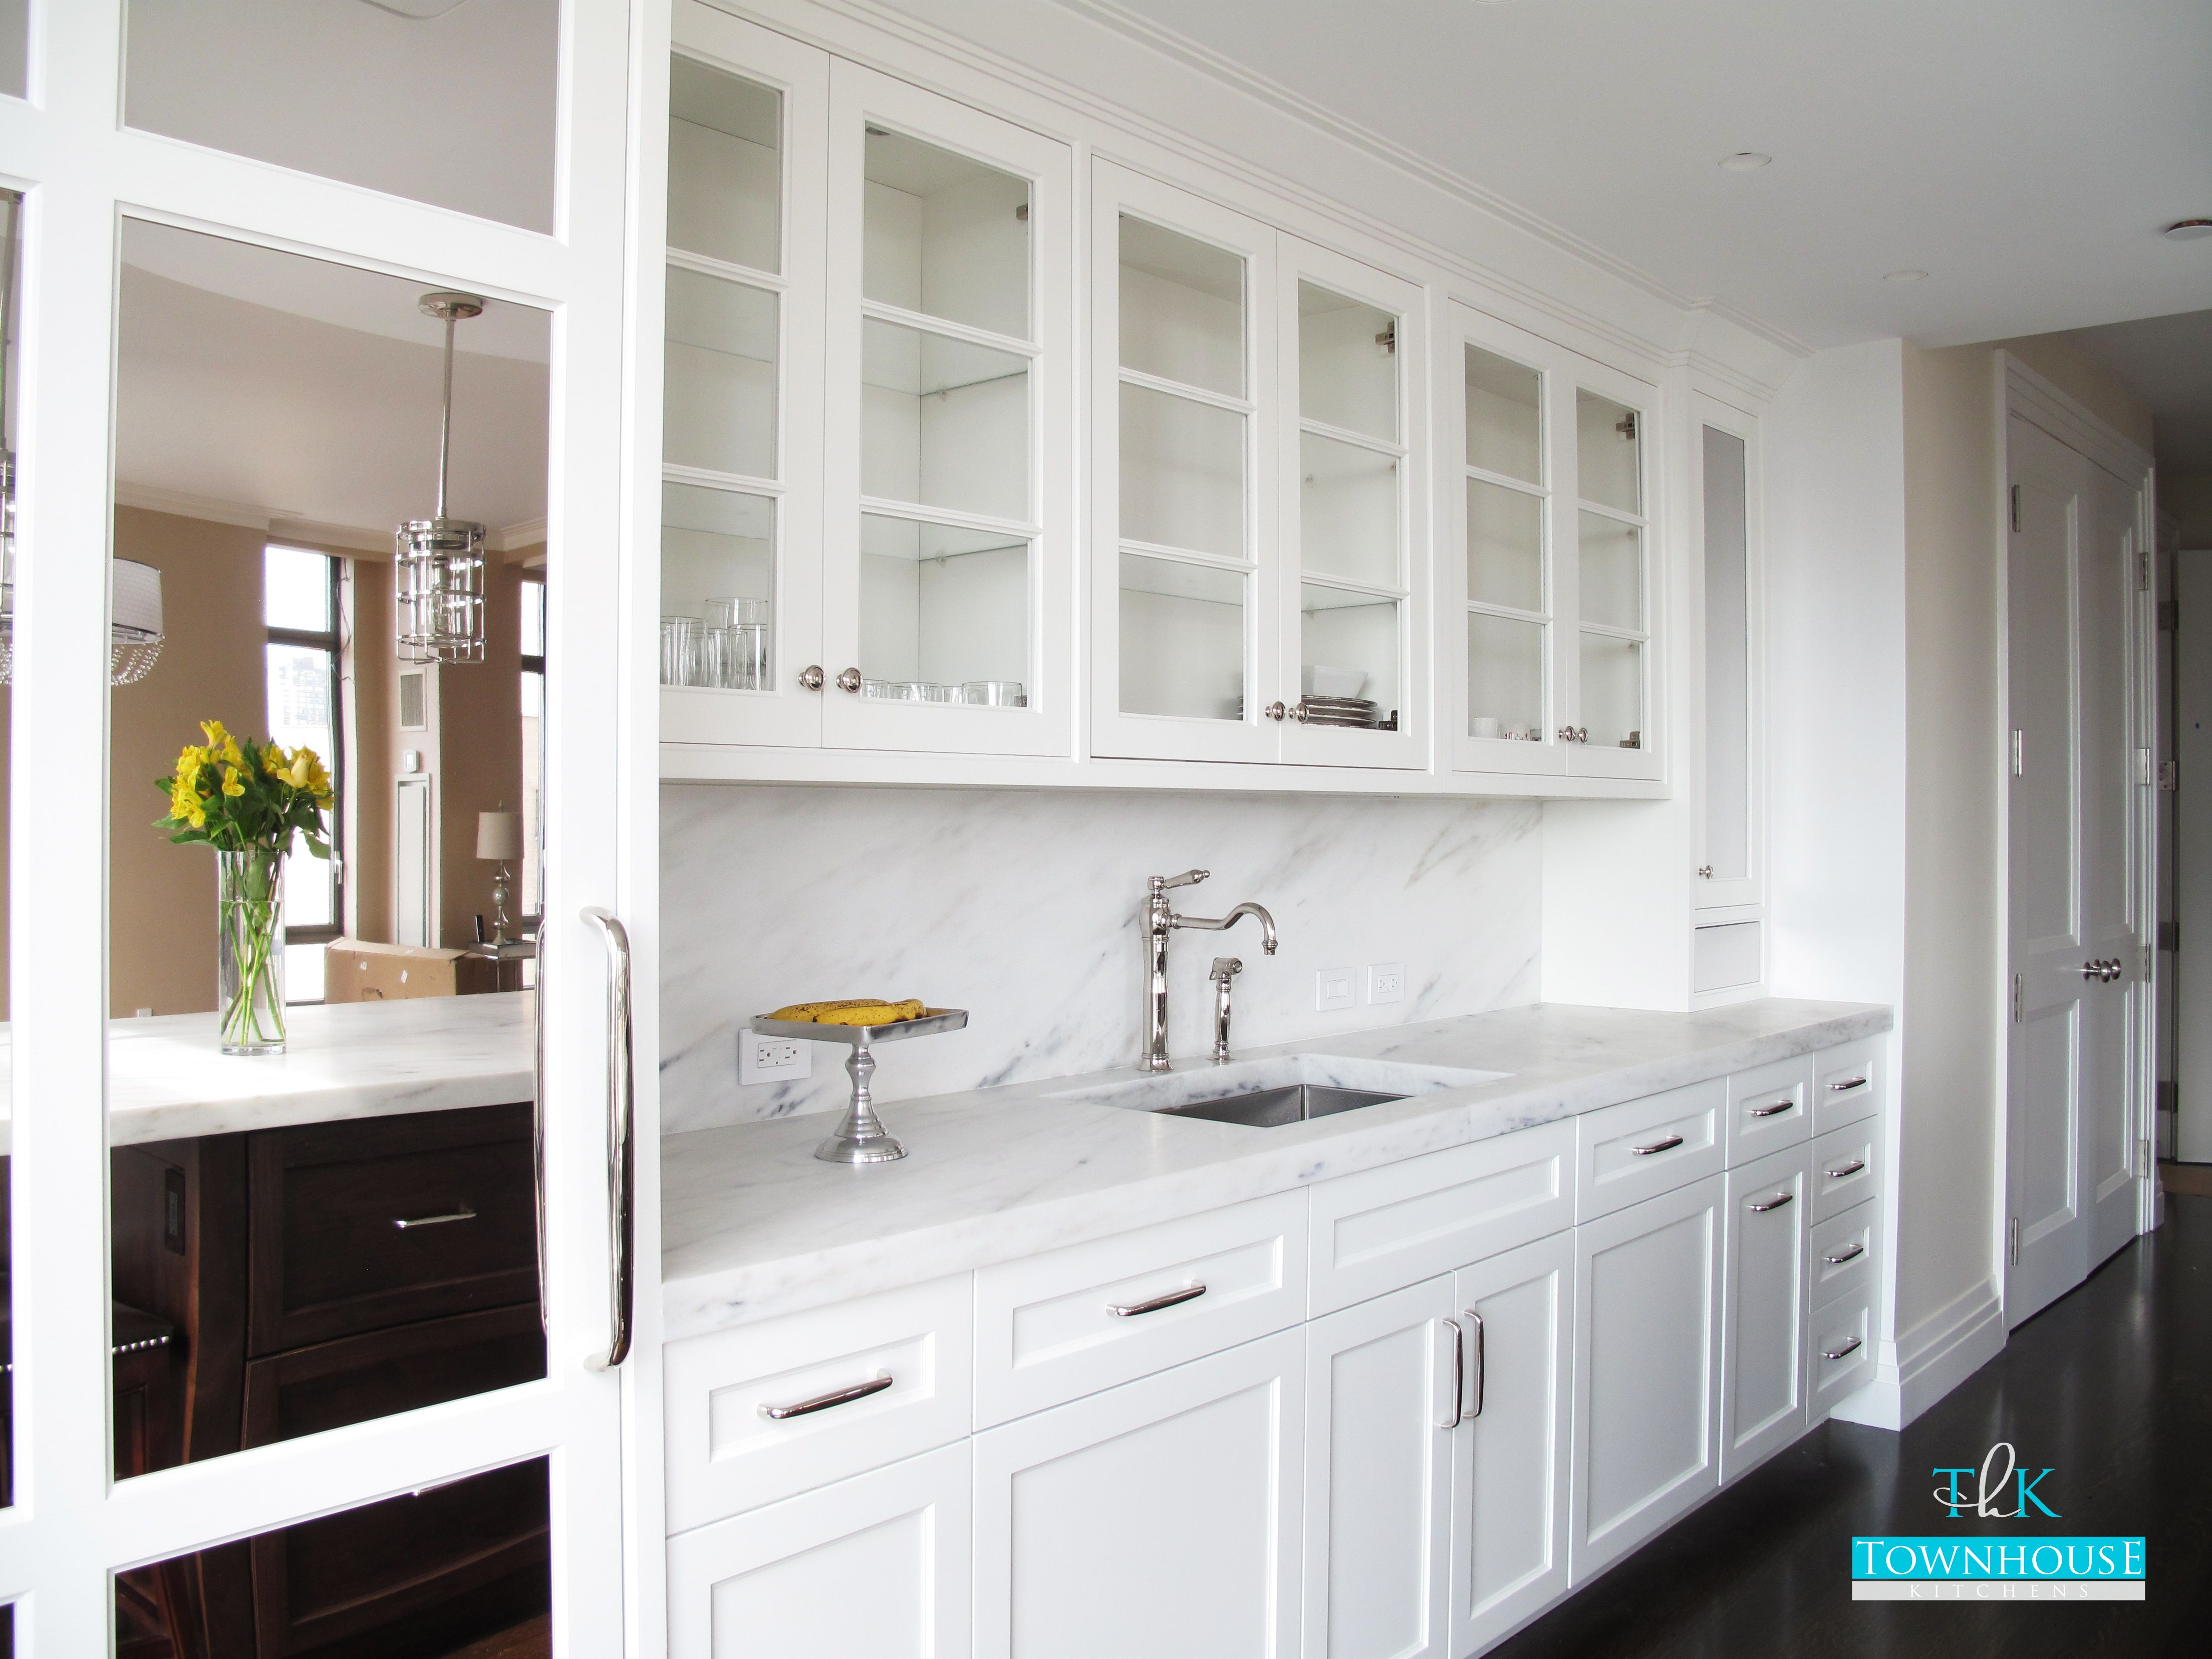 custom kitchen countertops Custom Kitchen Design White high gloss handle less cabinetry with marble countertops and